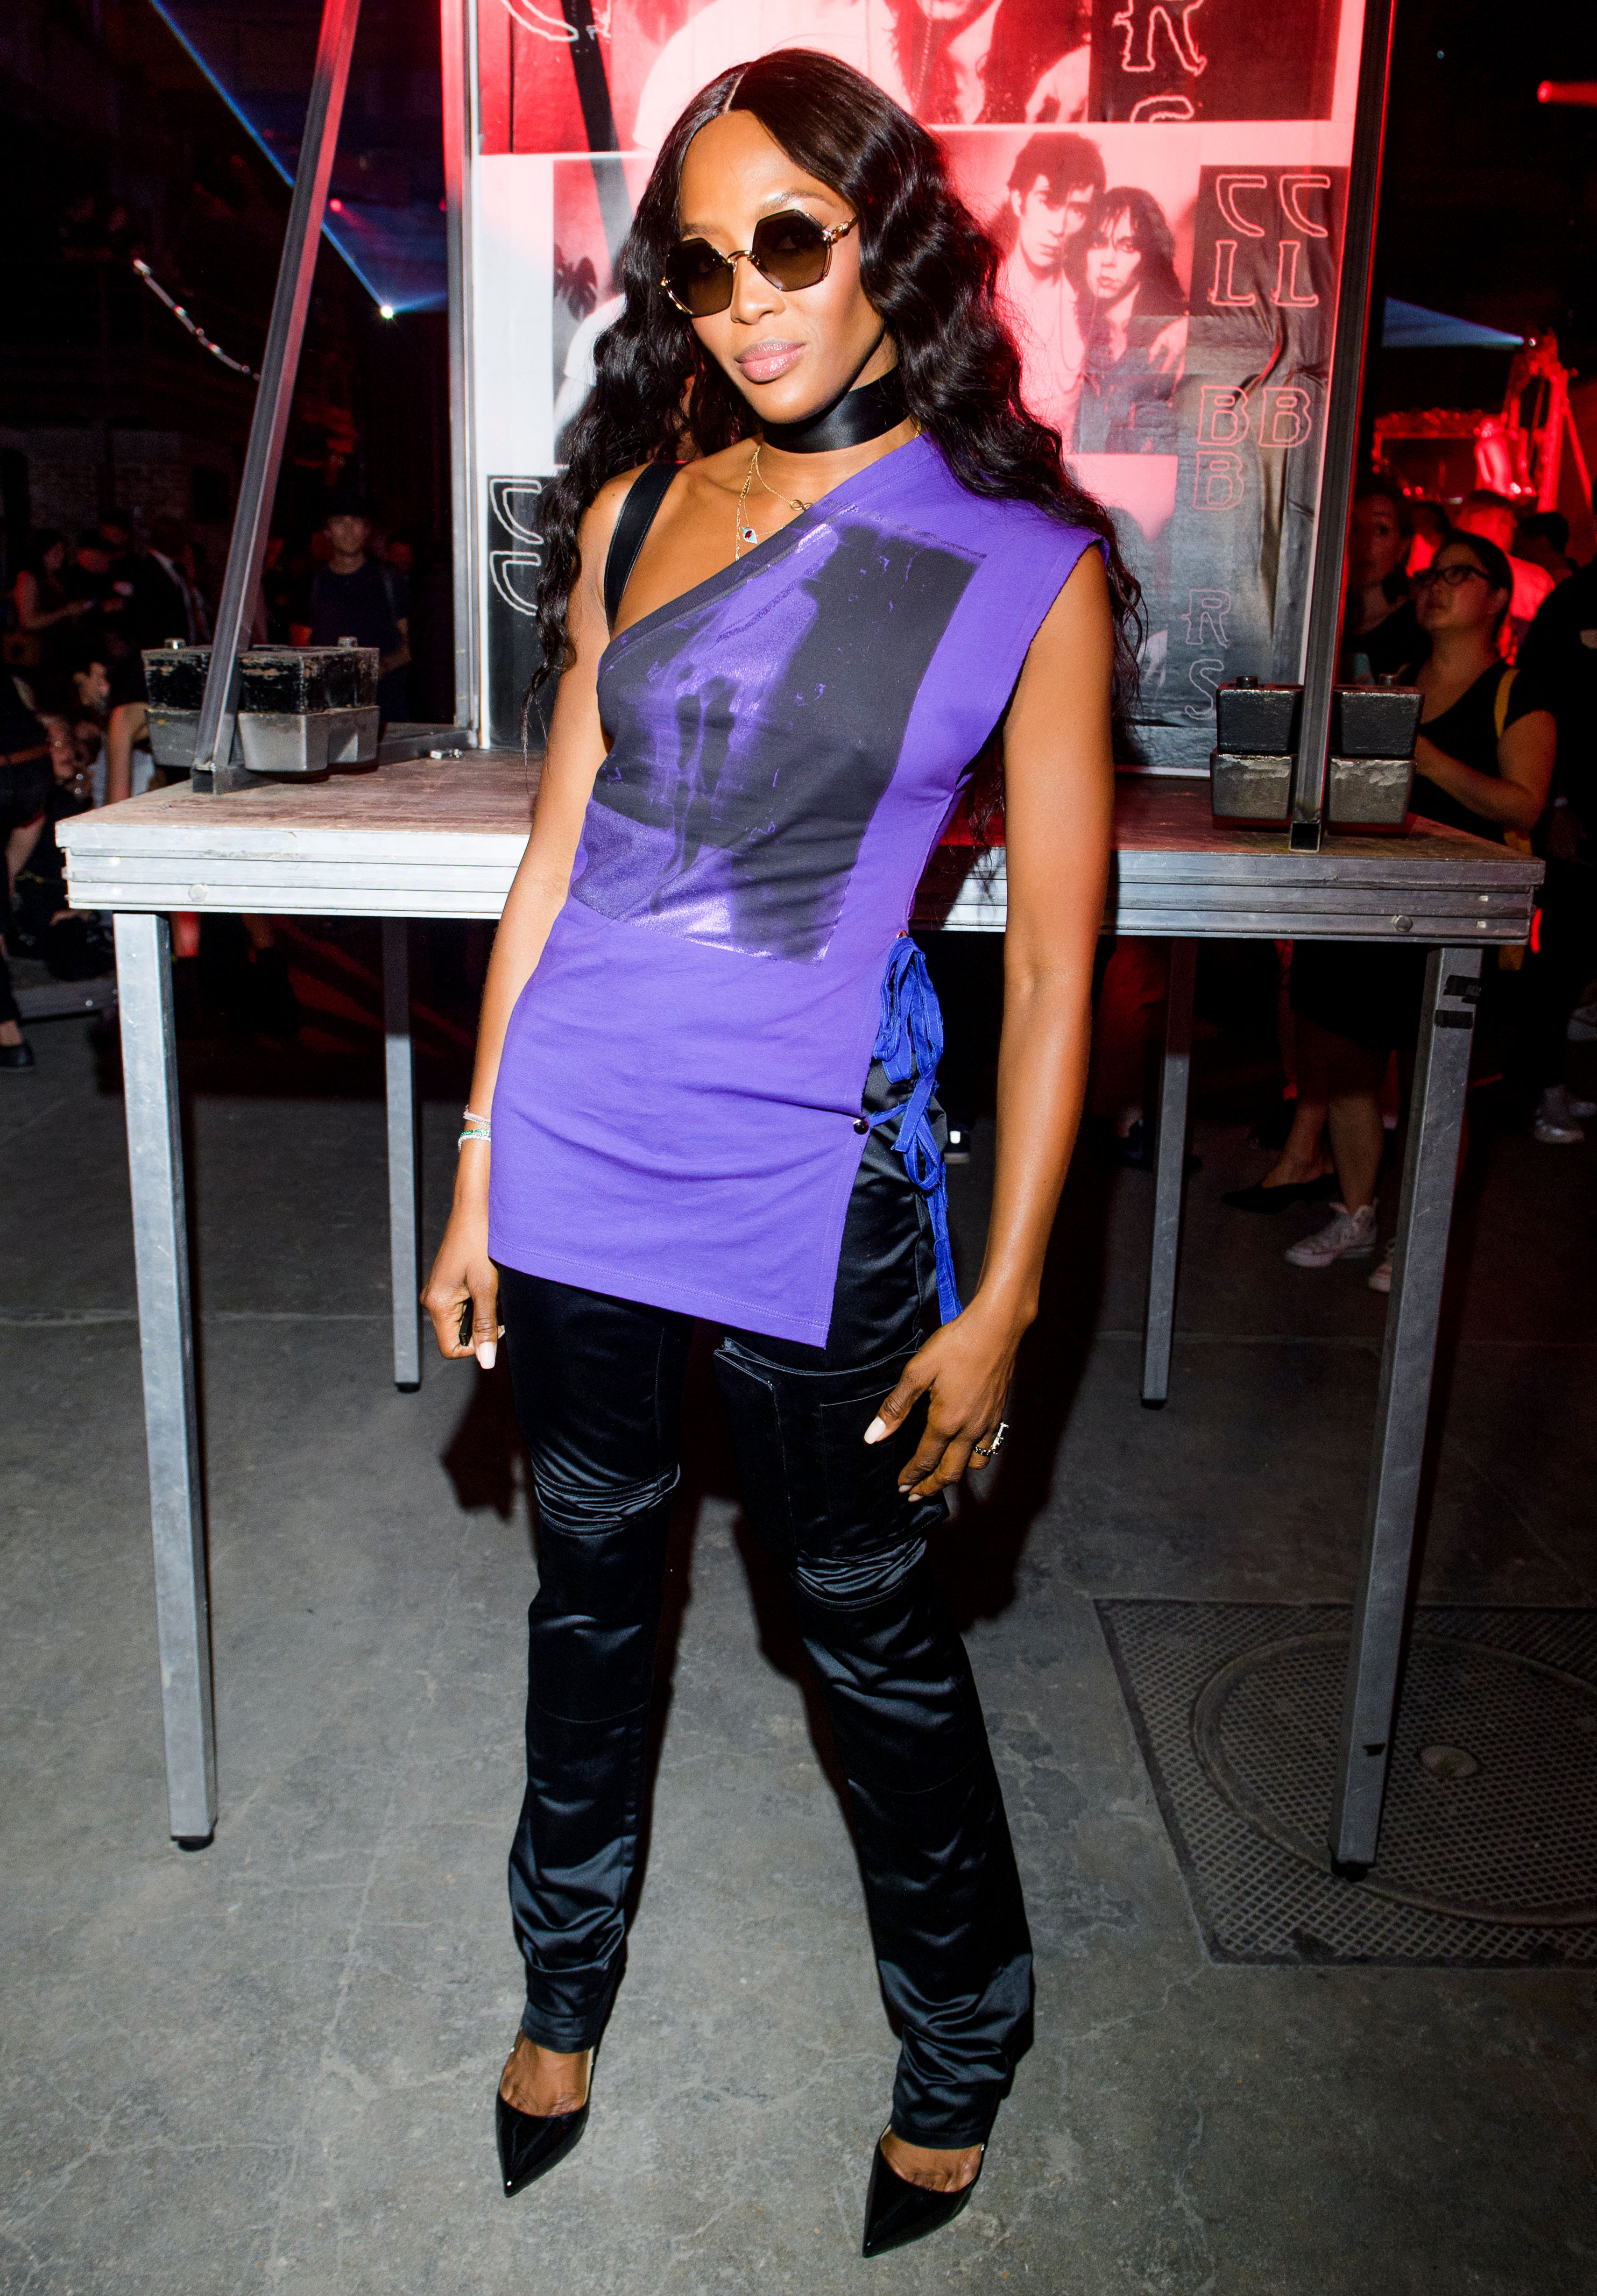 Naomi Campbell - The OG supermodel looked cool in satin trousers and a purple one-shoulder tank at the Raf Simons show on Wednesday, June 20.